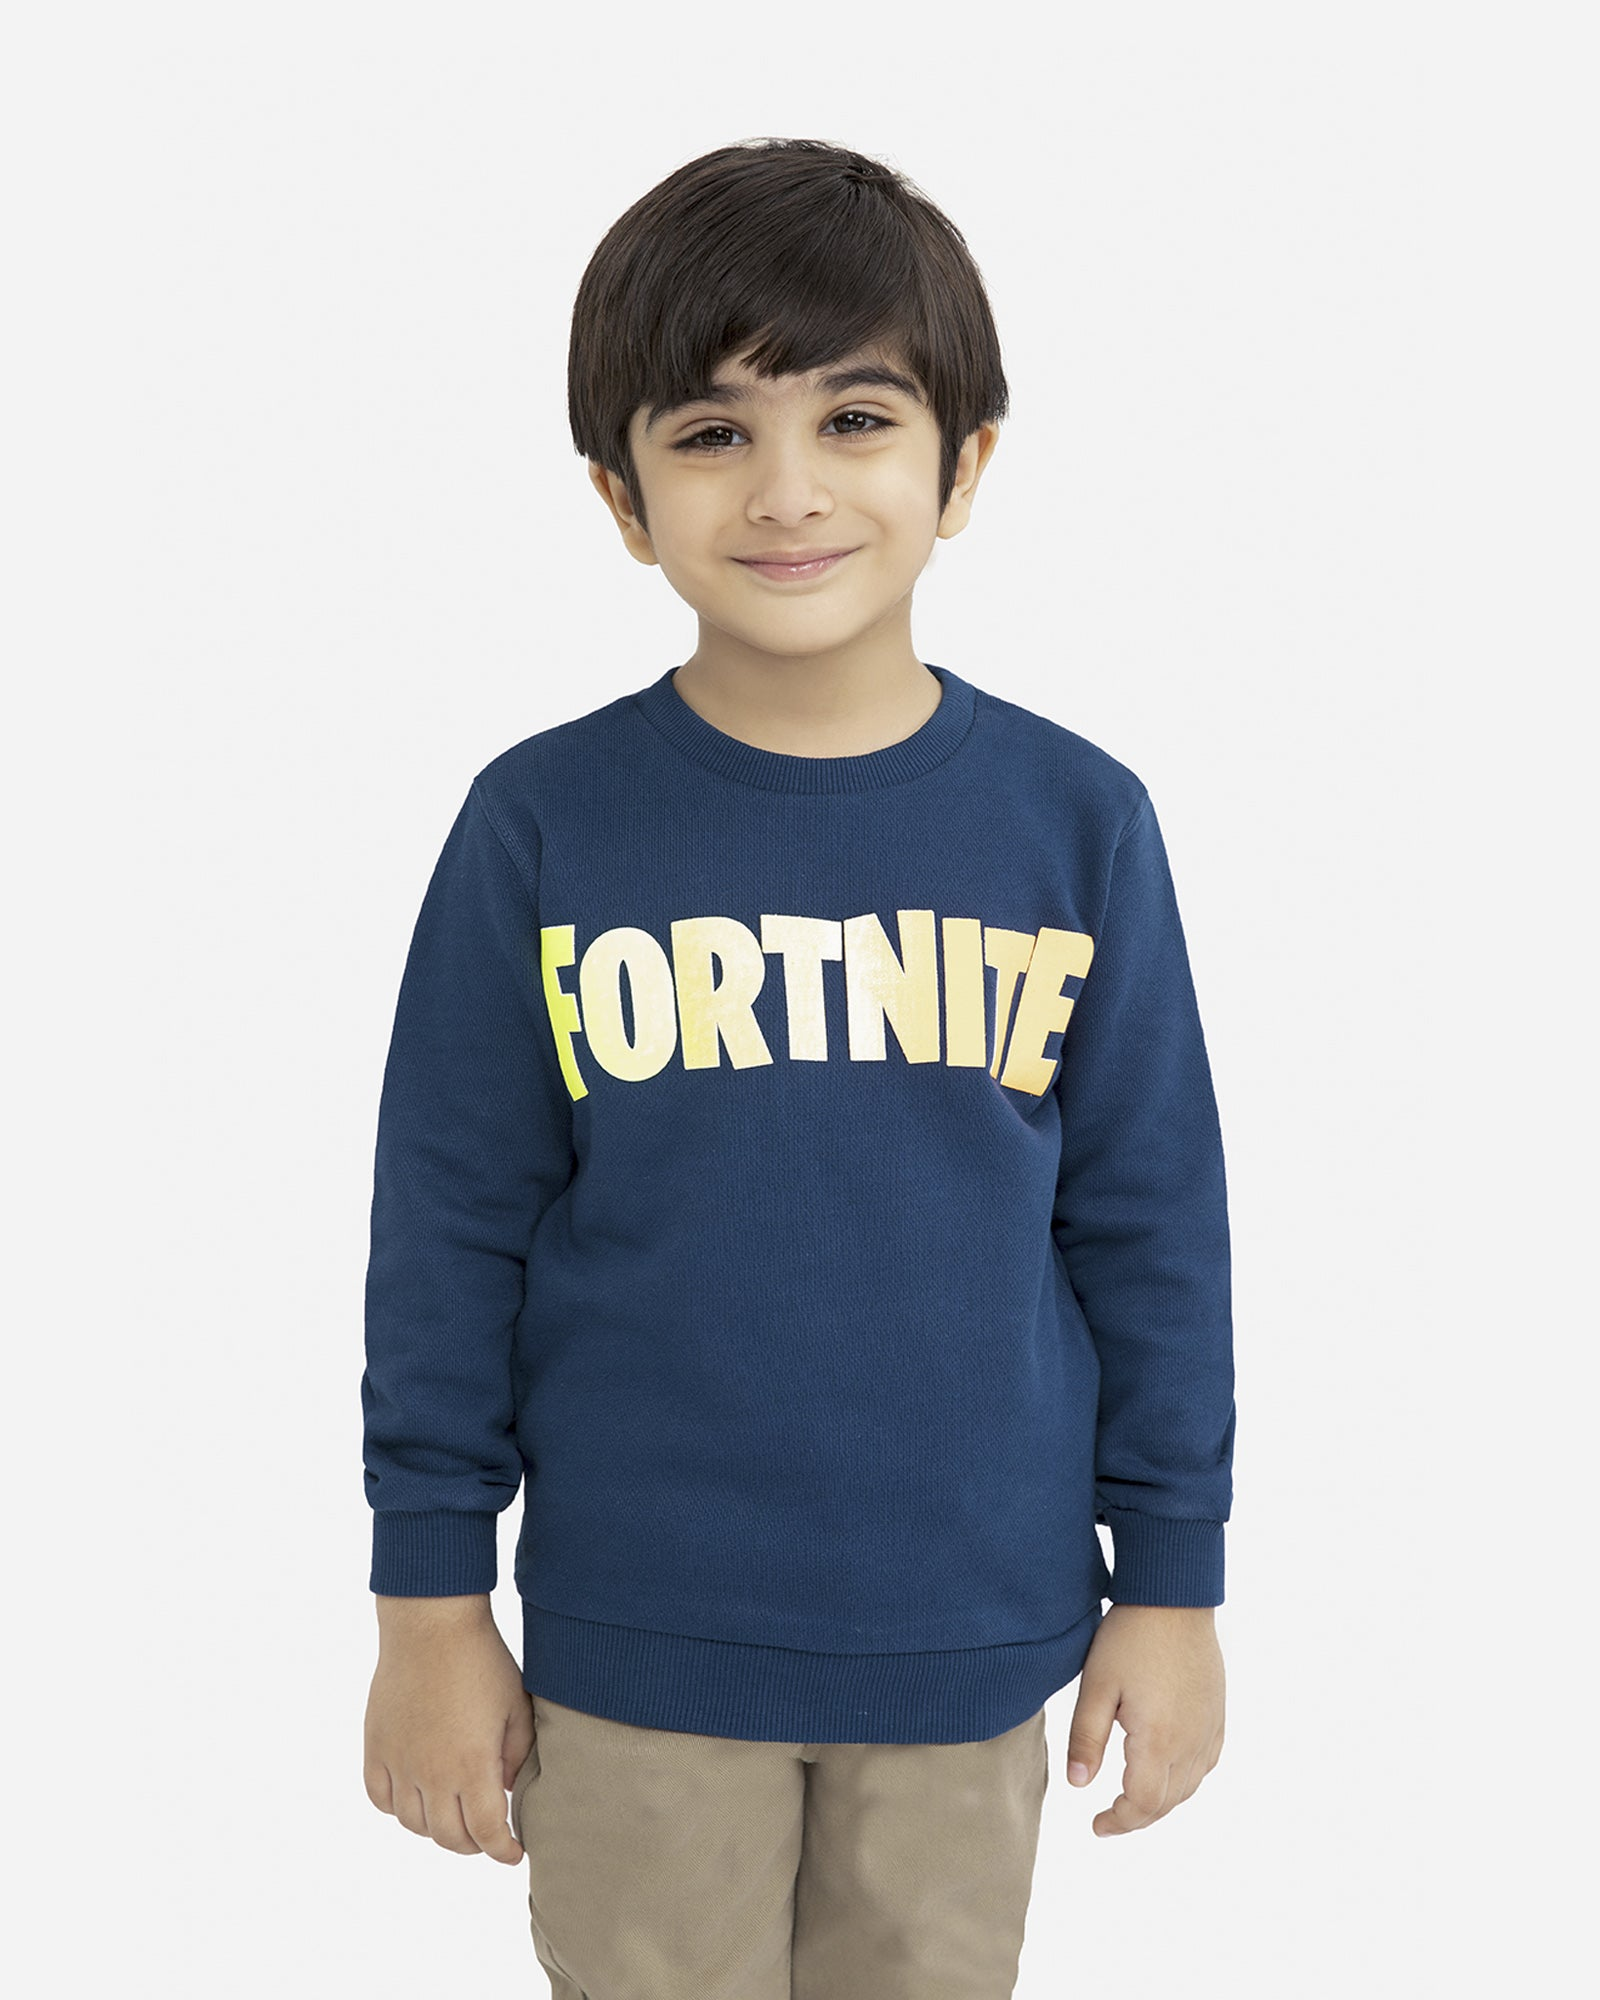 Fornite Sweatshirt